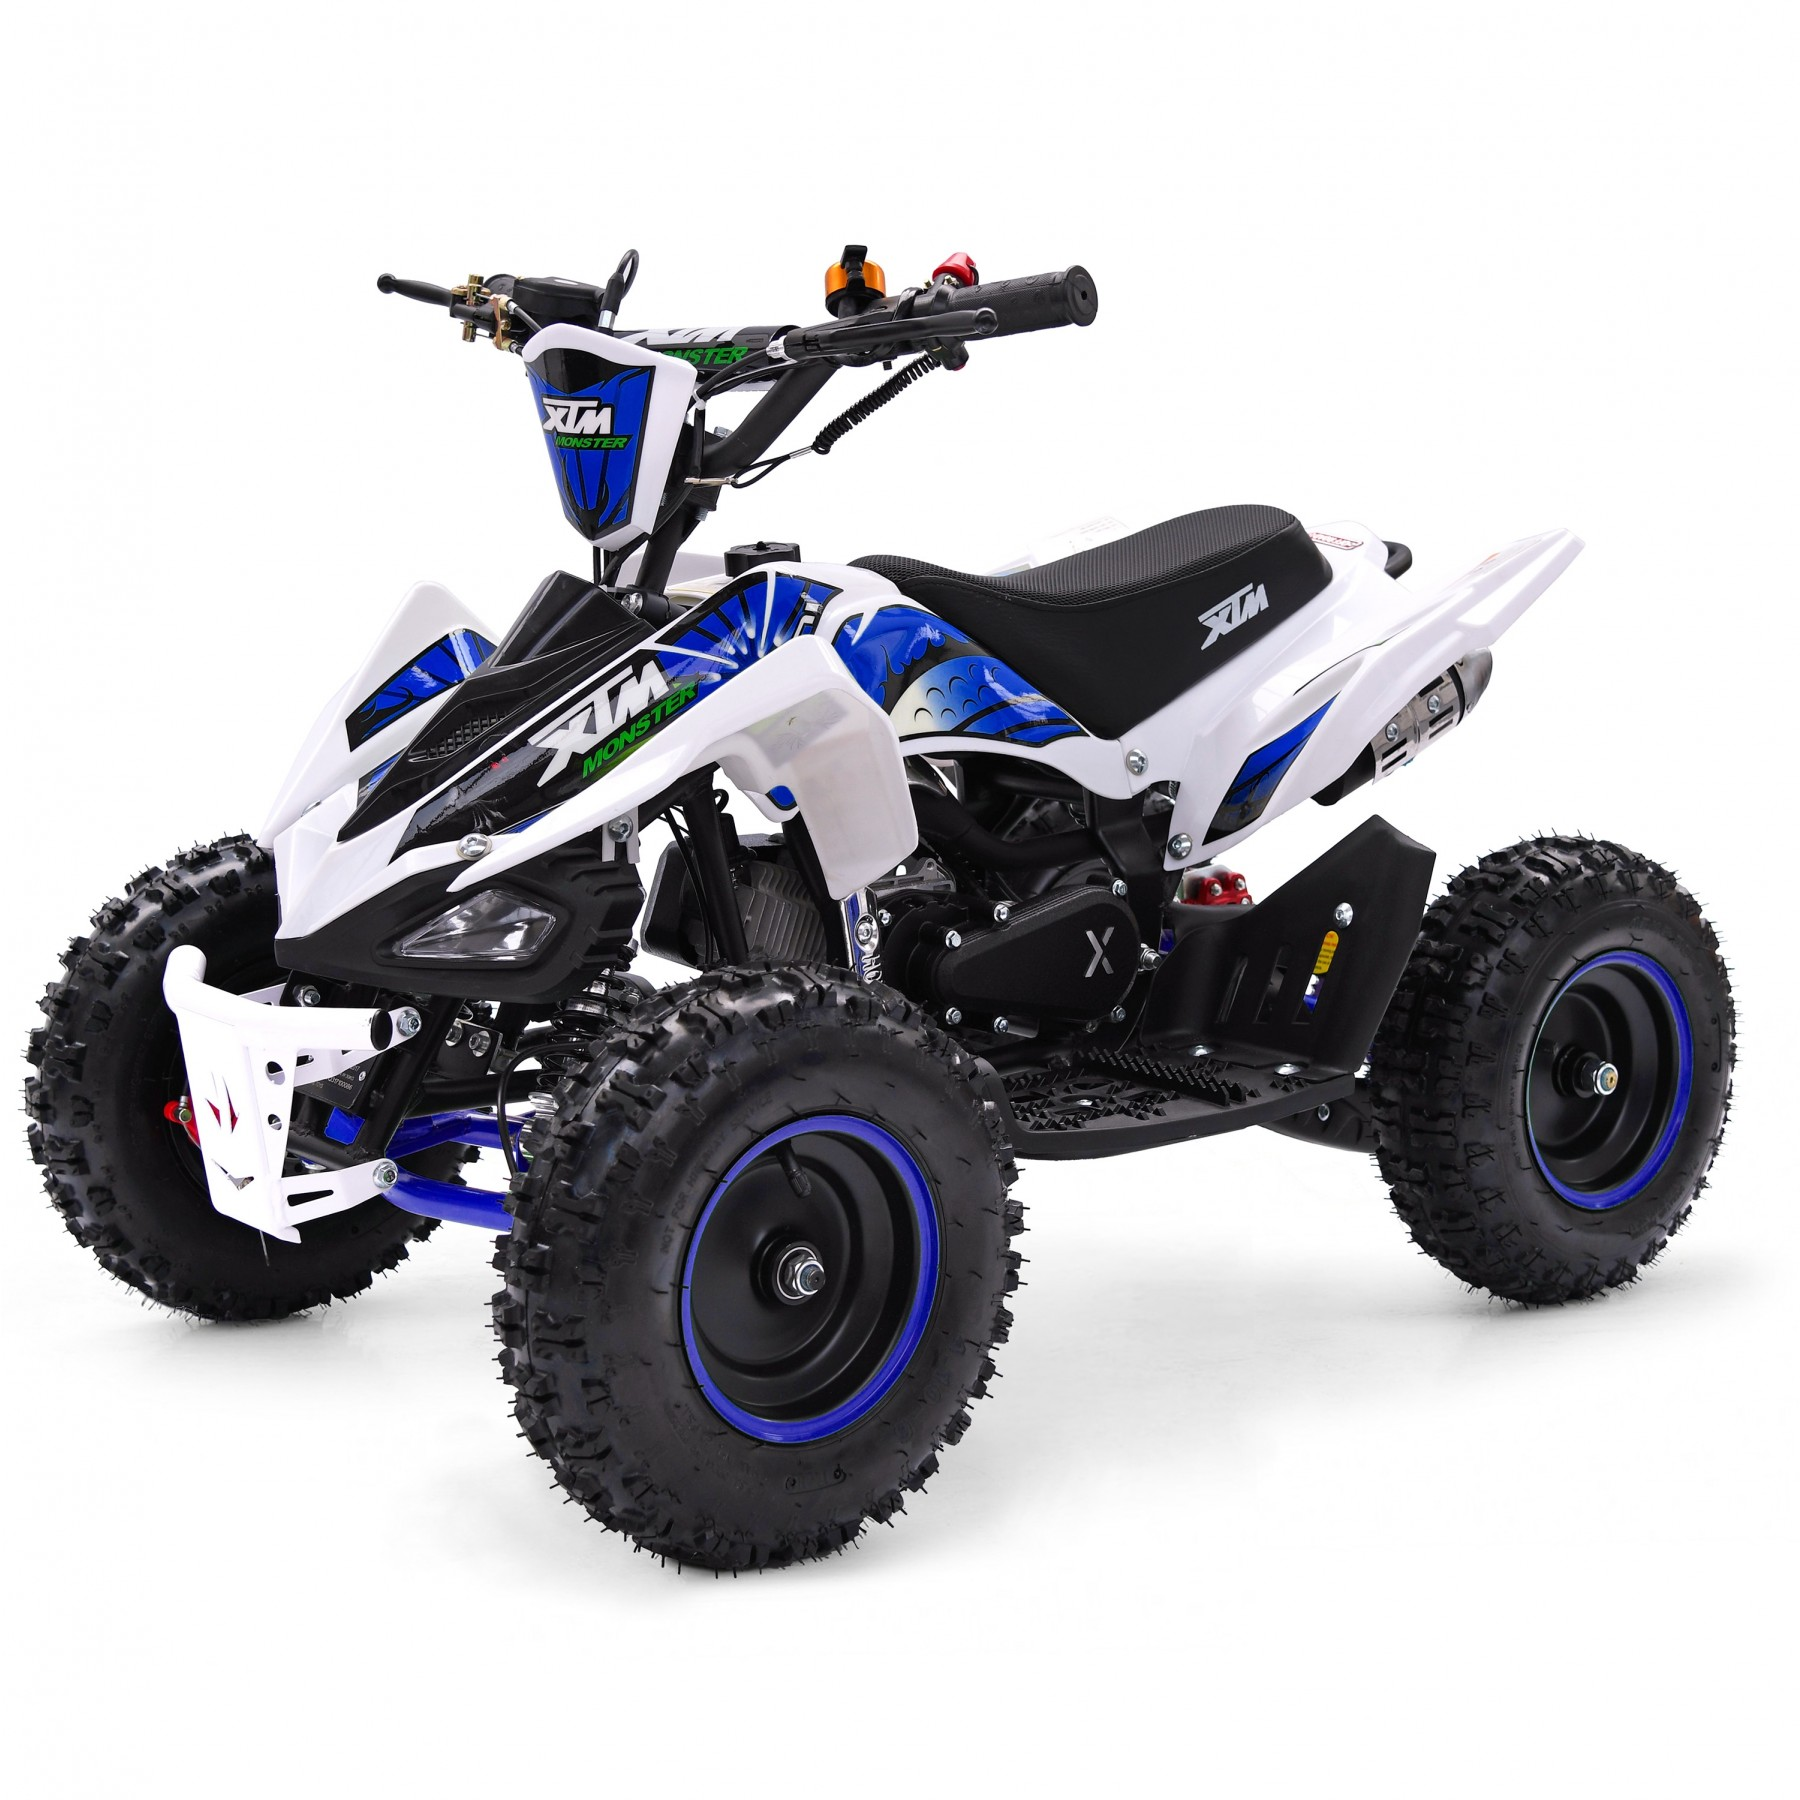 XTM MONSTER 50cc QUAD BIKE WHITE BLUE